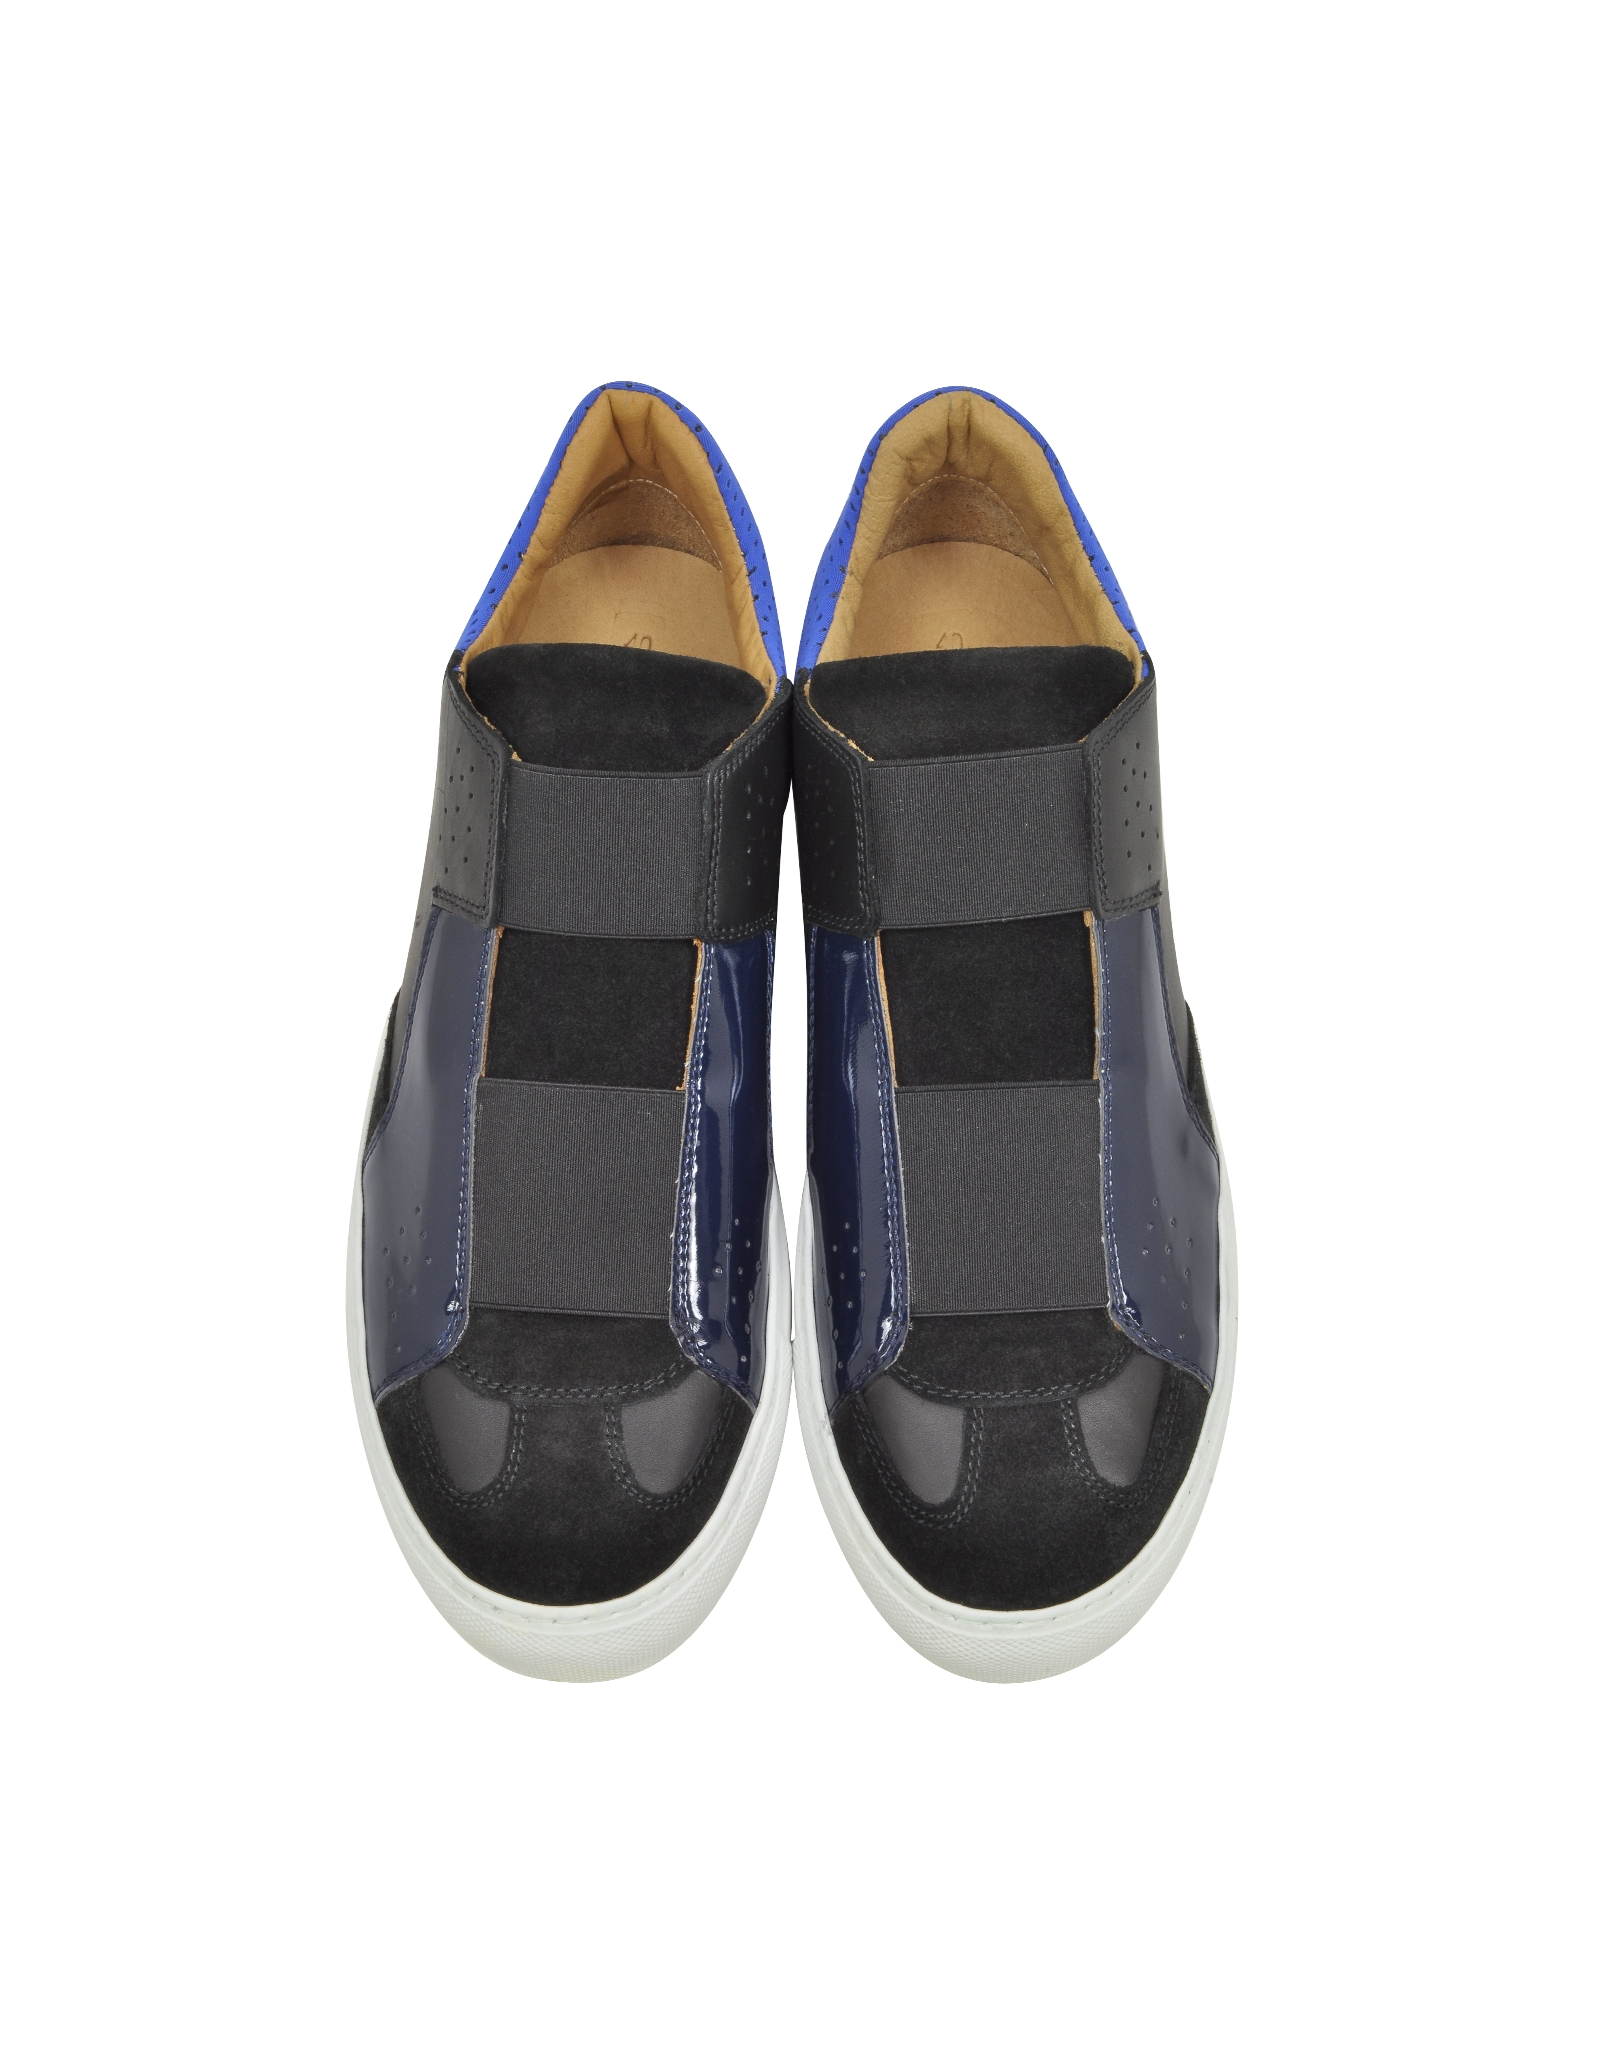 slip-on sneakers - Black Maison Martin Margiela lWQREg8